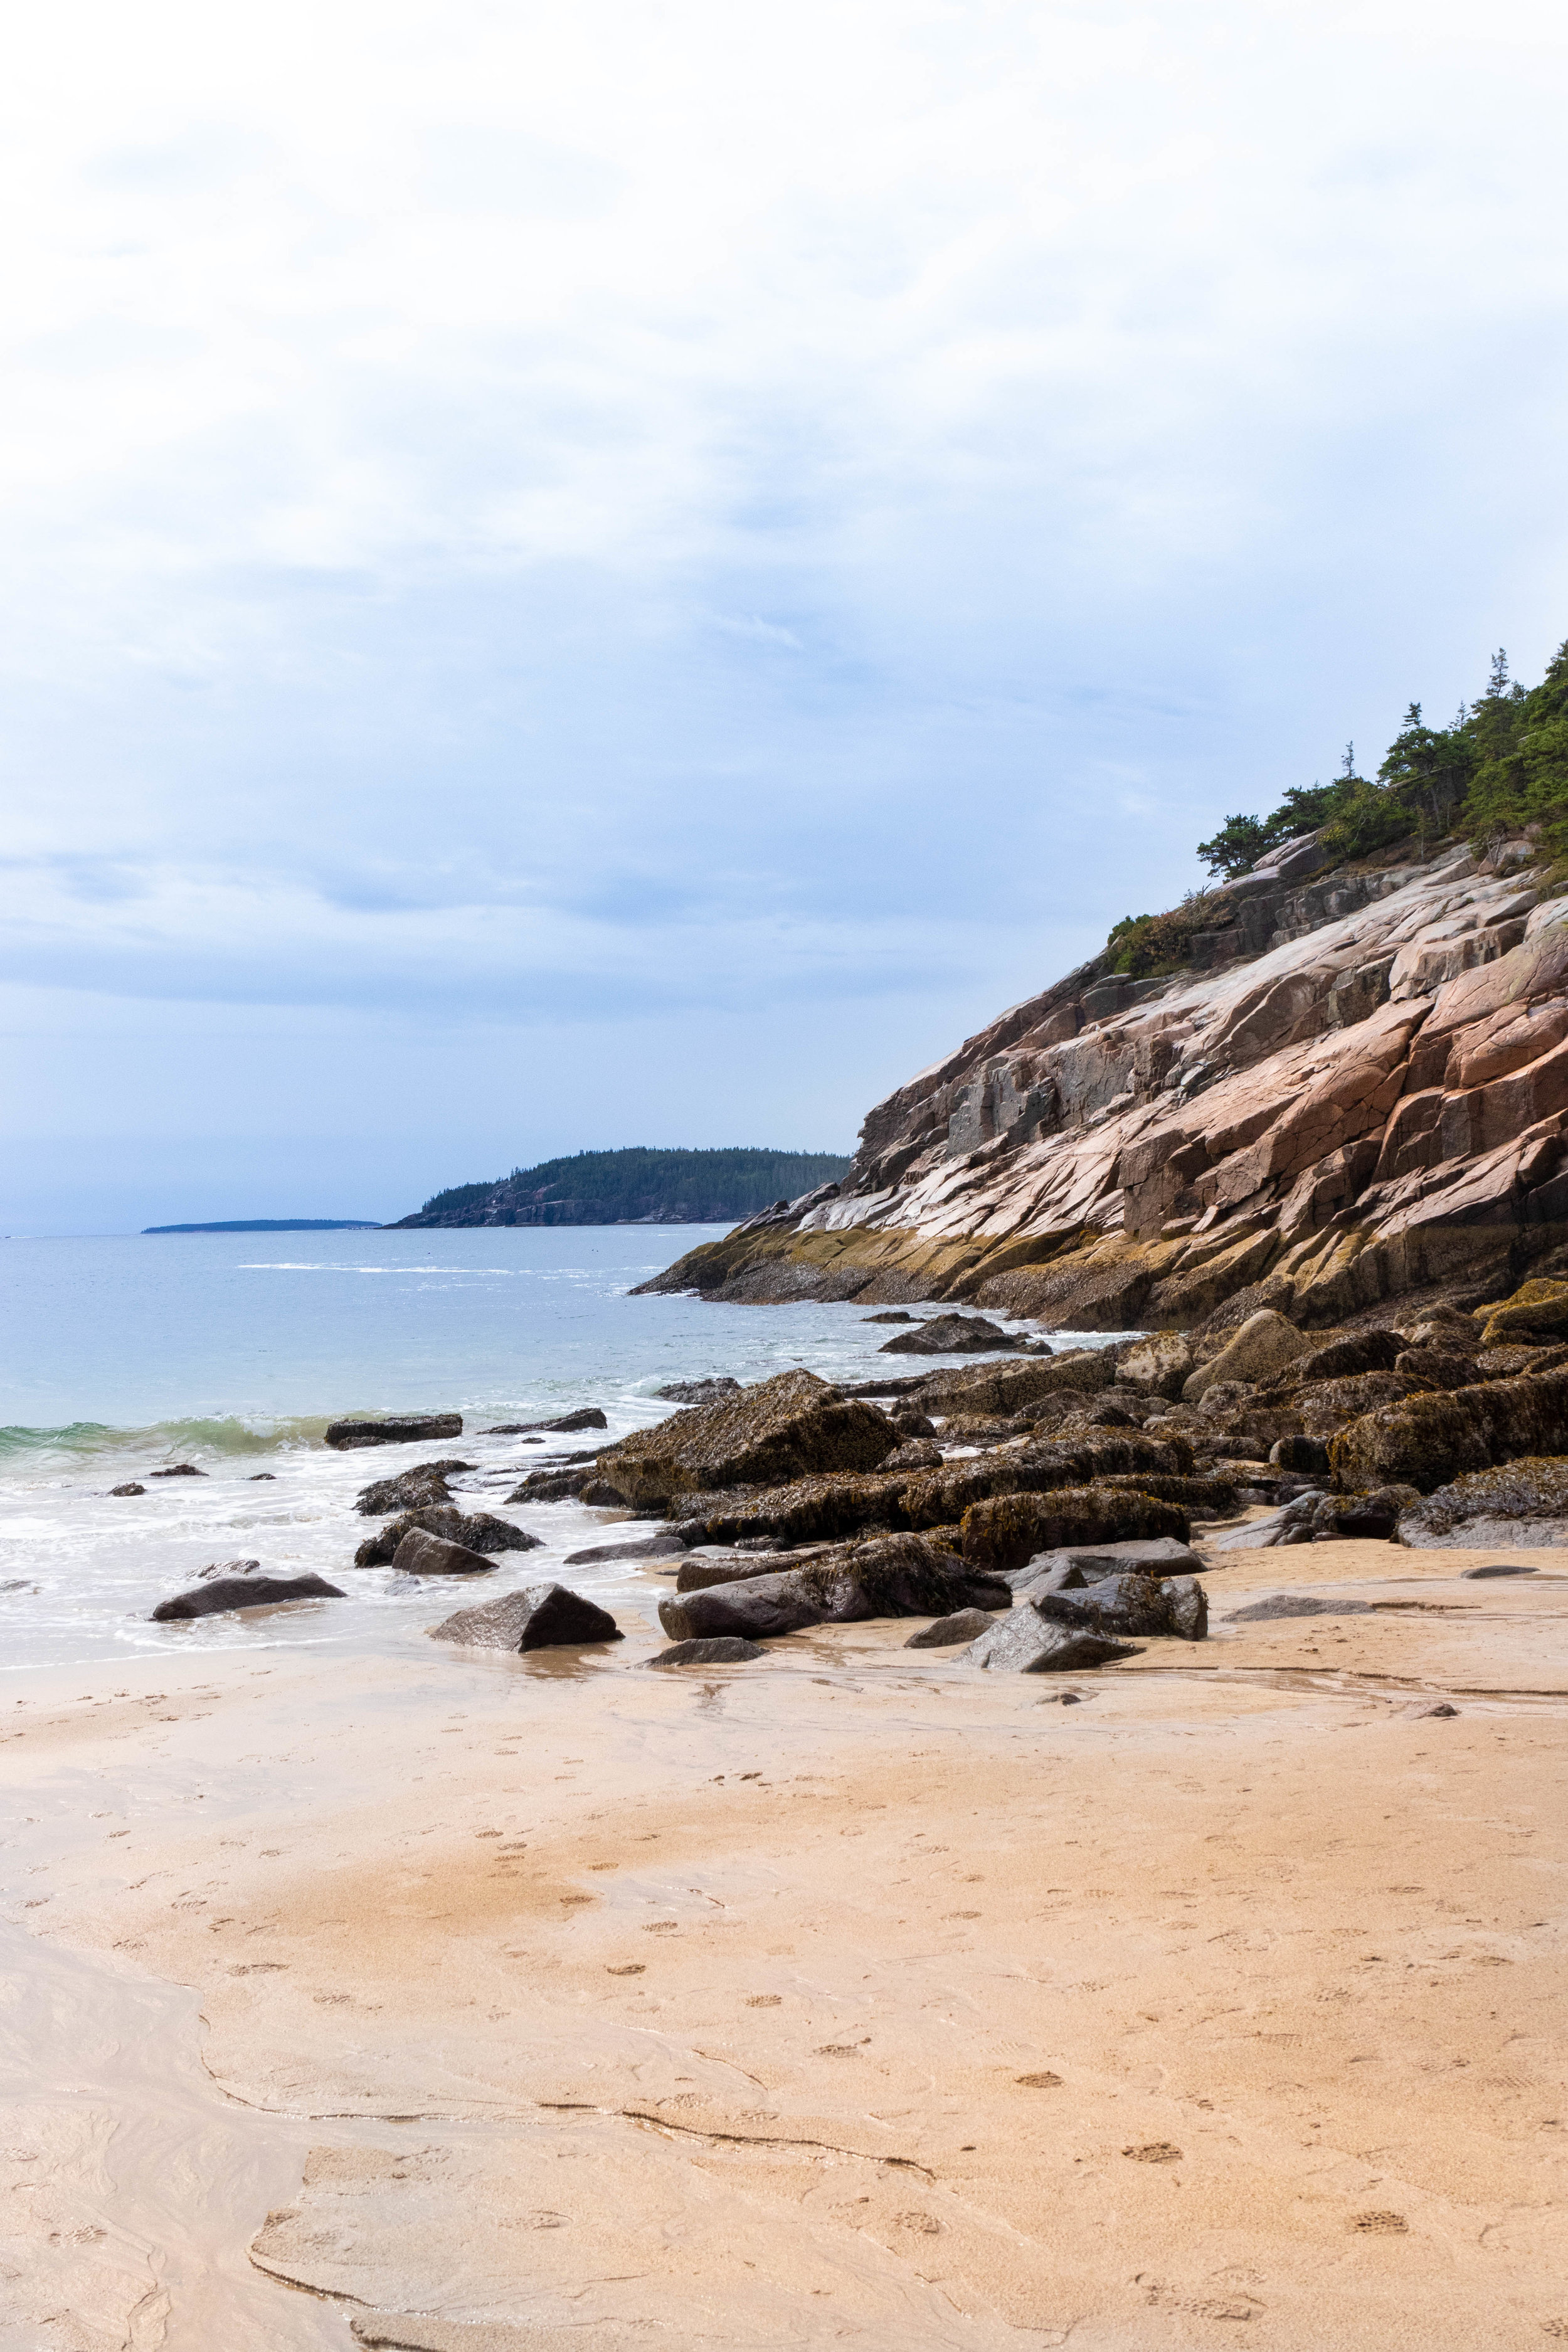 Landscape photo of Sand Beach in Acadia National Park in Maine by Vision Balm in Charleston, SC.